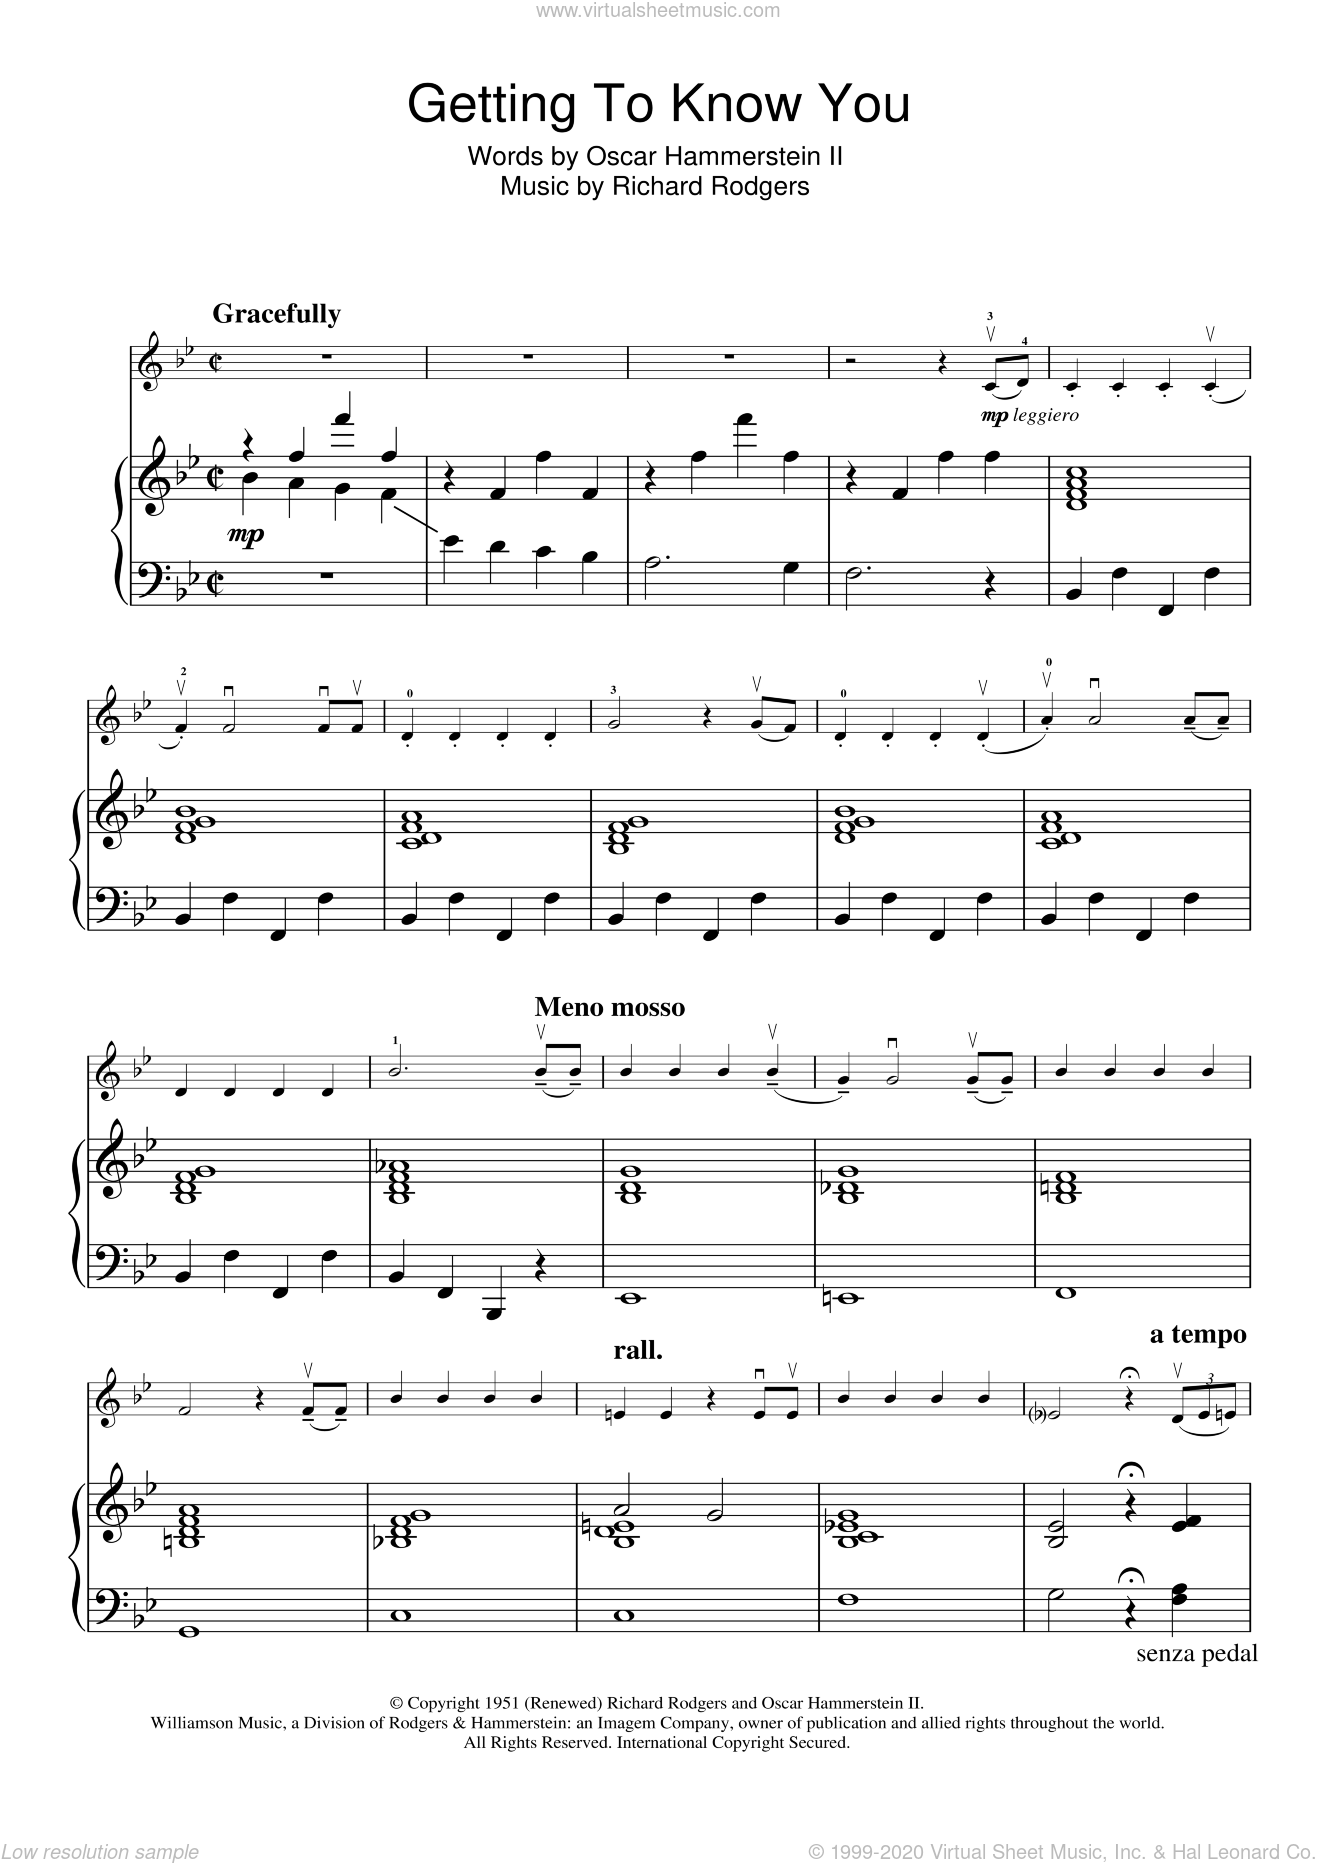 Getting To Know You (from The King And I) sheet music for violin solo by Rodgers & Hammerstein, Richard Rodgers and Oscar II Hammerstein, intermediate skill level